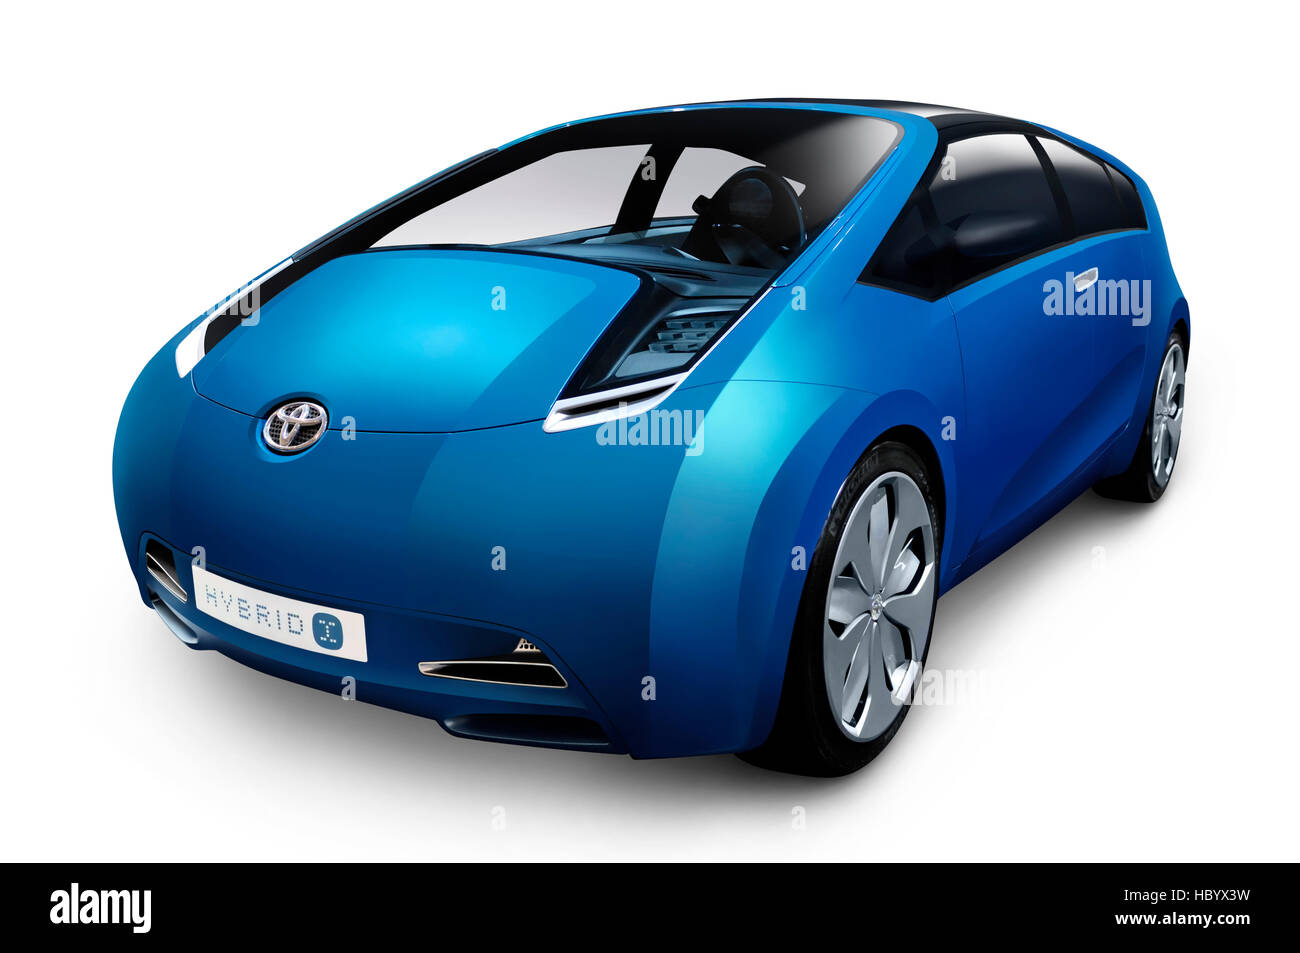 Toyota Hybrid X concept de voiture hybride Photo Stock